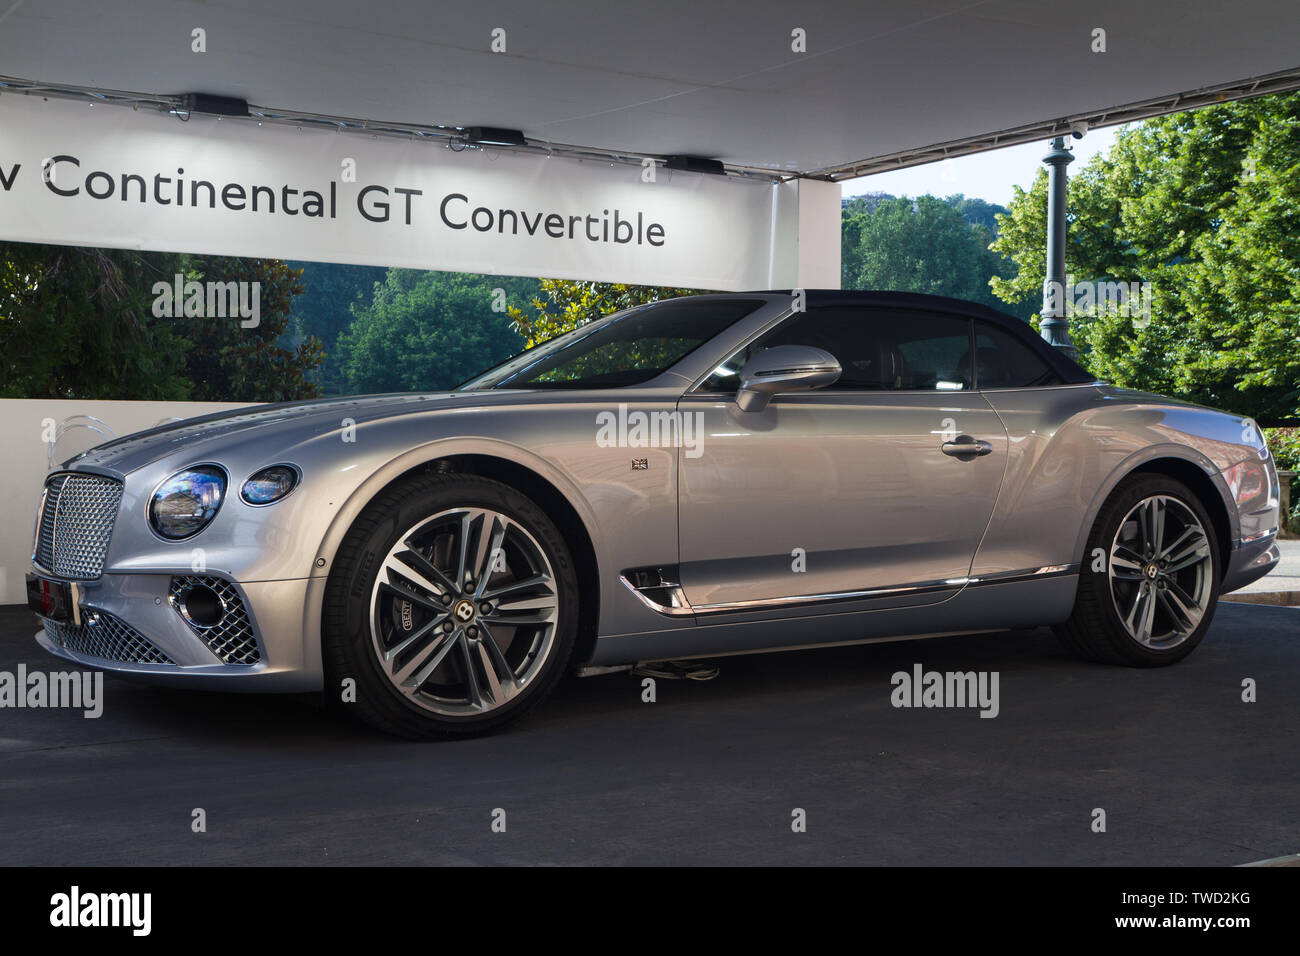 A Bentley Continental Gt Convertible 2019 Edition Of Parco Valentino Car Show Hosts Cars By Many Brands And Car Designers In Valentino Park In Torino Italy Stock Photo Alamy